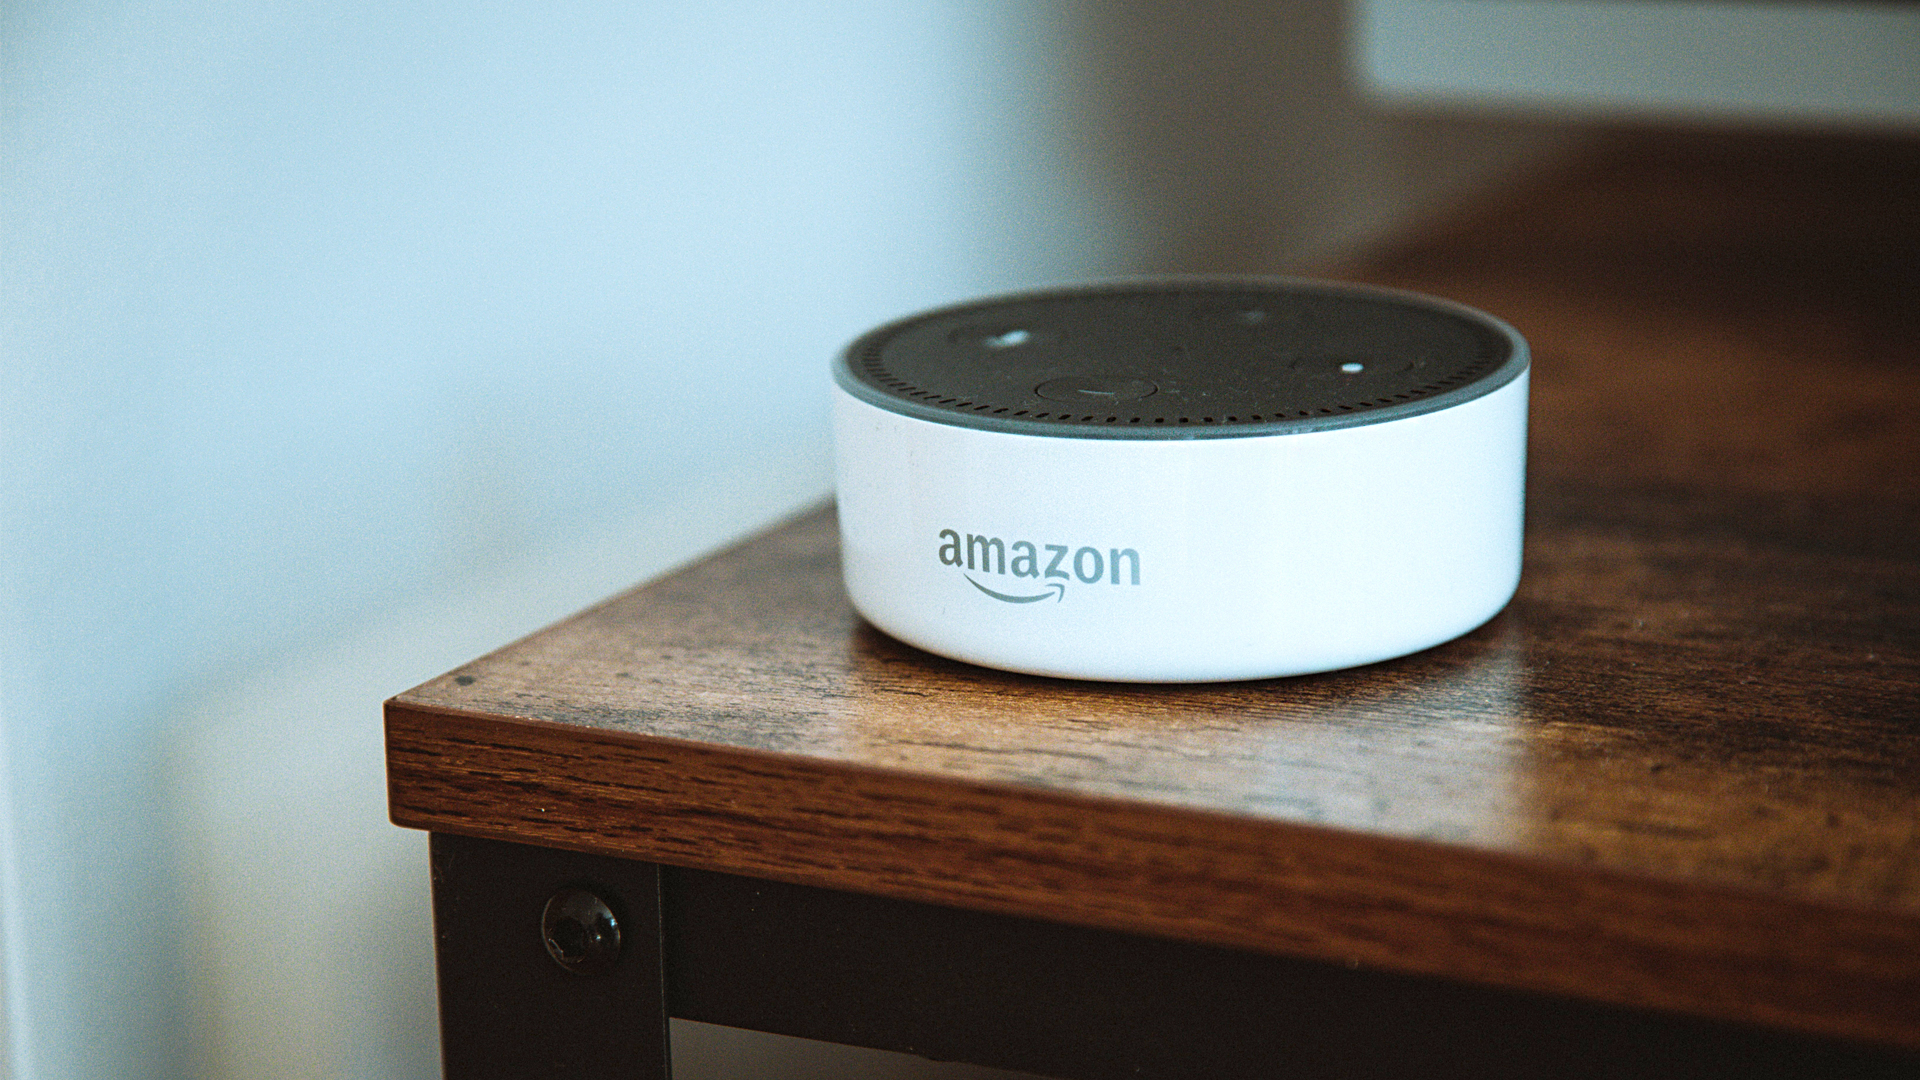 Indians Fell In Love With Amazon's Alexa, Proposed 6,000 Times A Day In 2020 - Zenger News